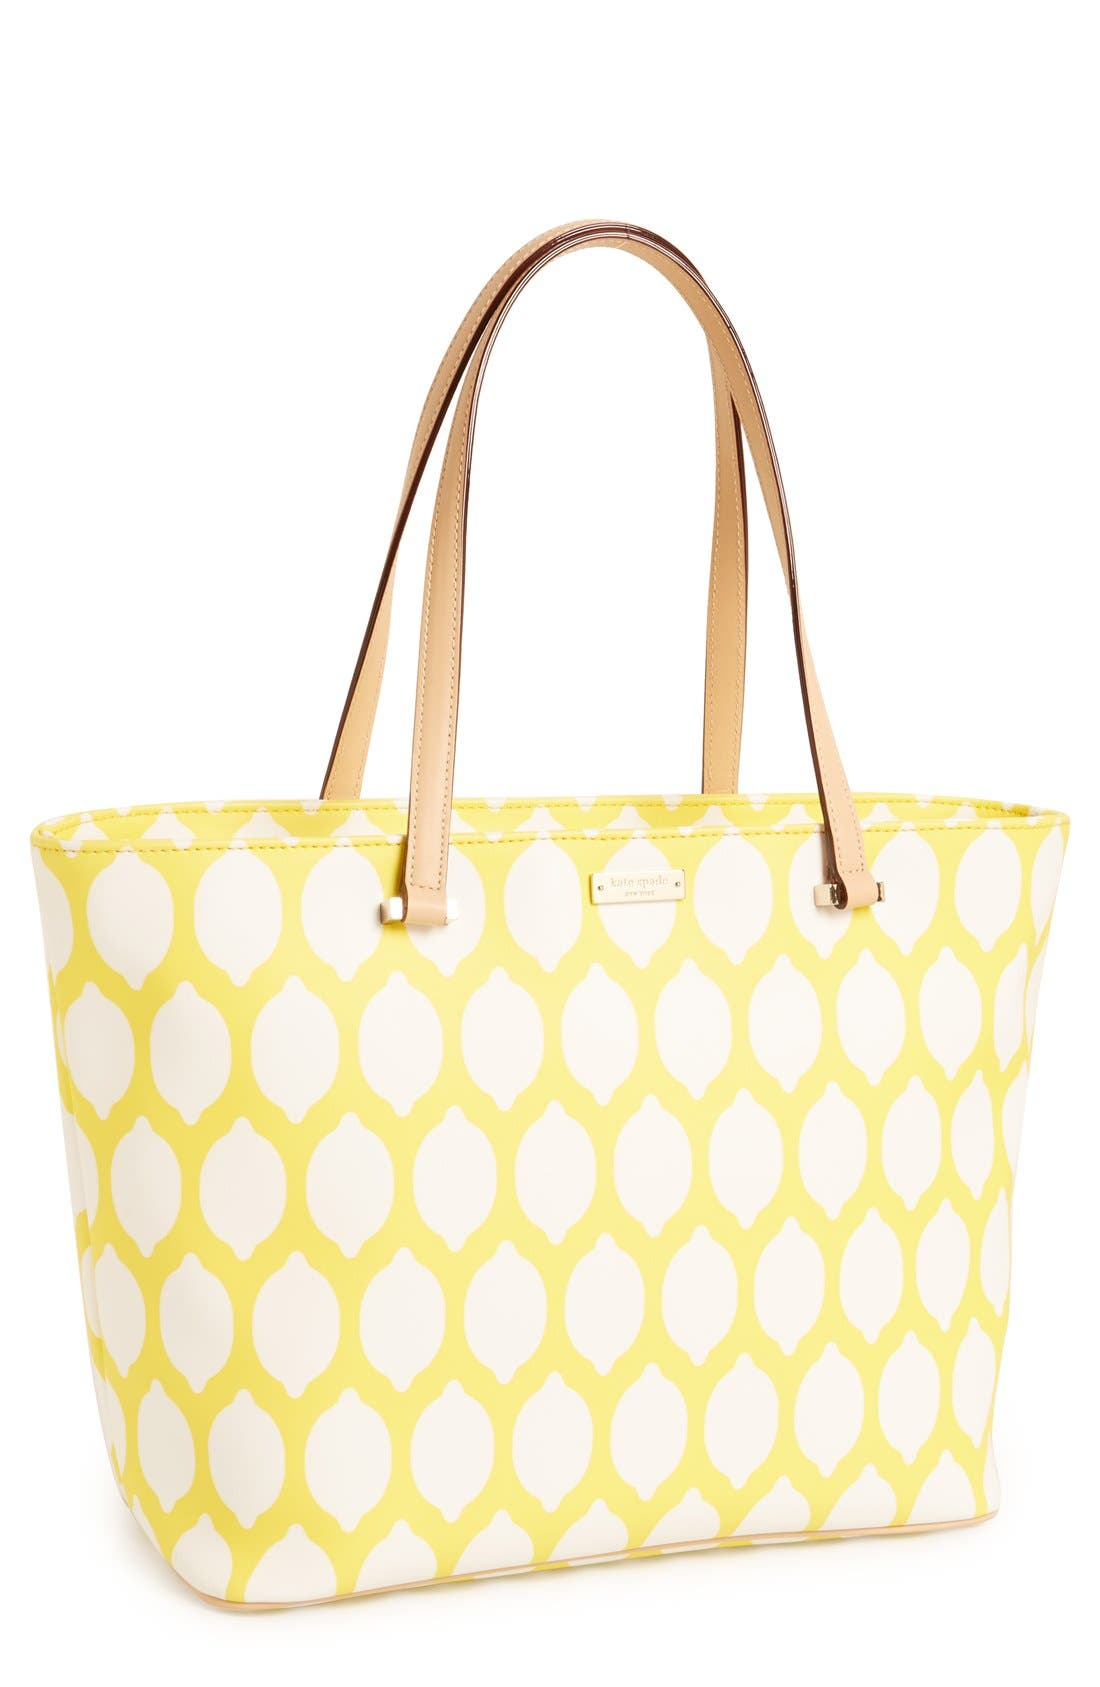 Alternate Image 1 Selected - kate spade new york 'francis' tote